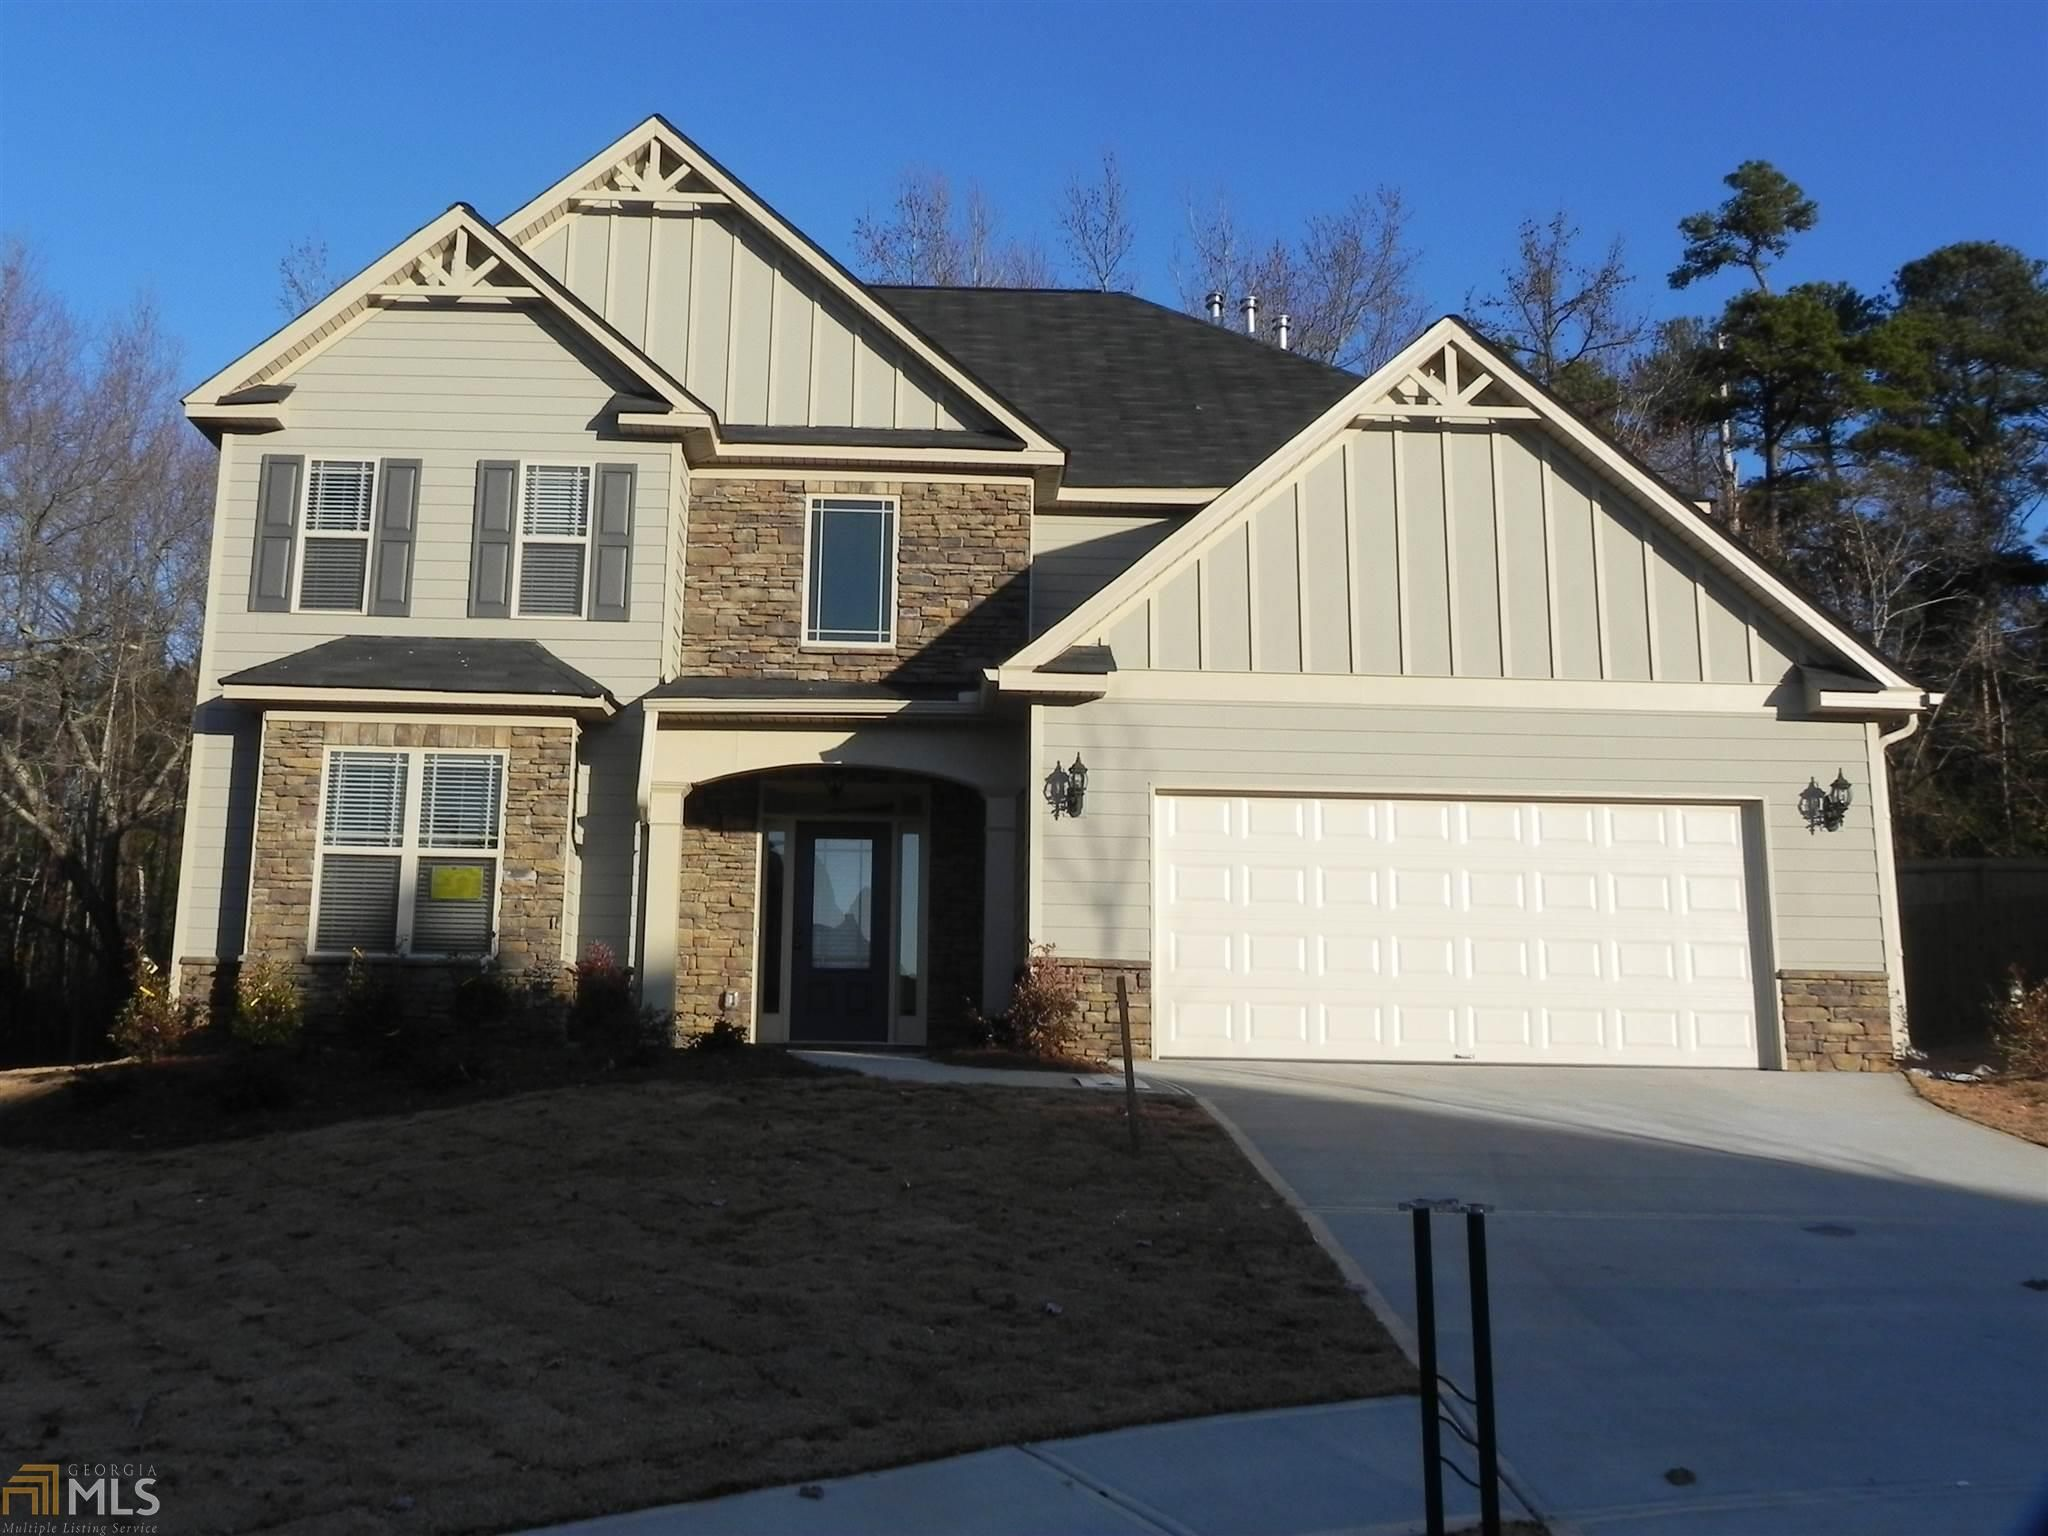 4357 Kershaw Dr #8 & 4357 Kershaw Dr #8 Snellville GA 30039 - Estimate and Home Details ...